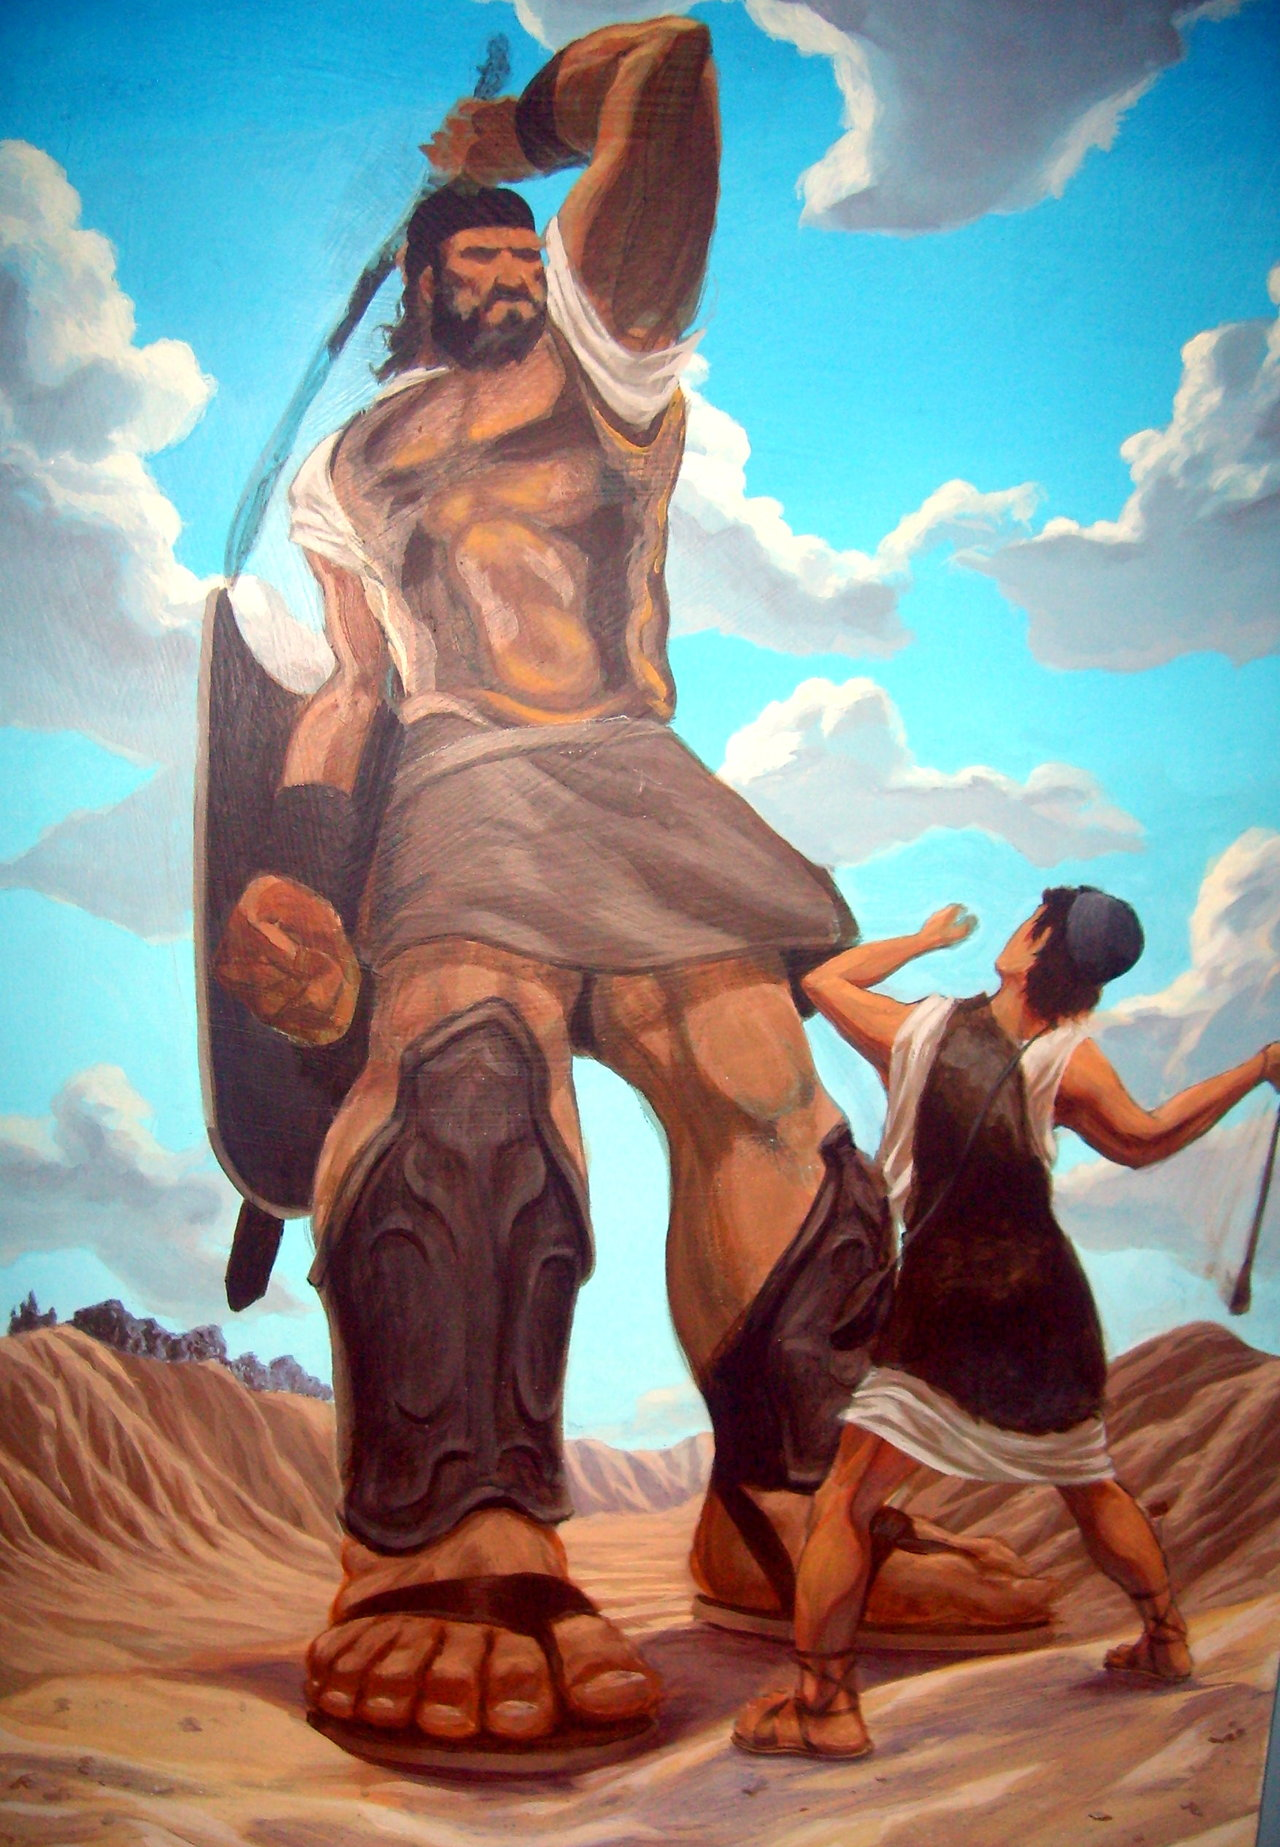 a comparison of the two leaders arthur becomes king and david and goliath The fierce warrior goliath is sent to track down a foretold king of the israelites a young shepherd david is thrust into an epic chase and adventure fighting for his own life, the lives of his loved ones and eventually the lives of his people.